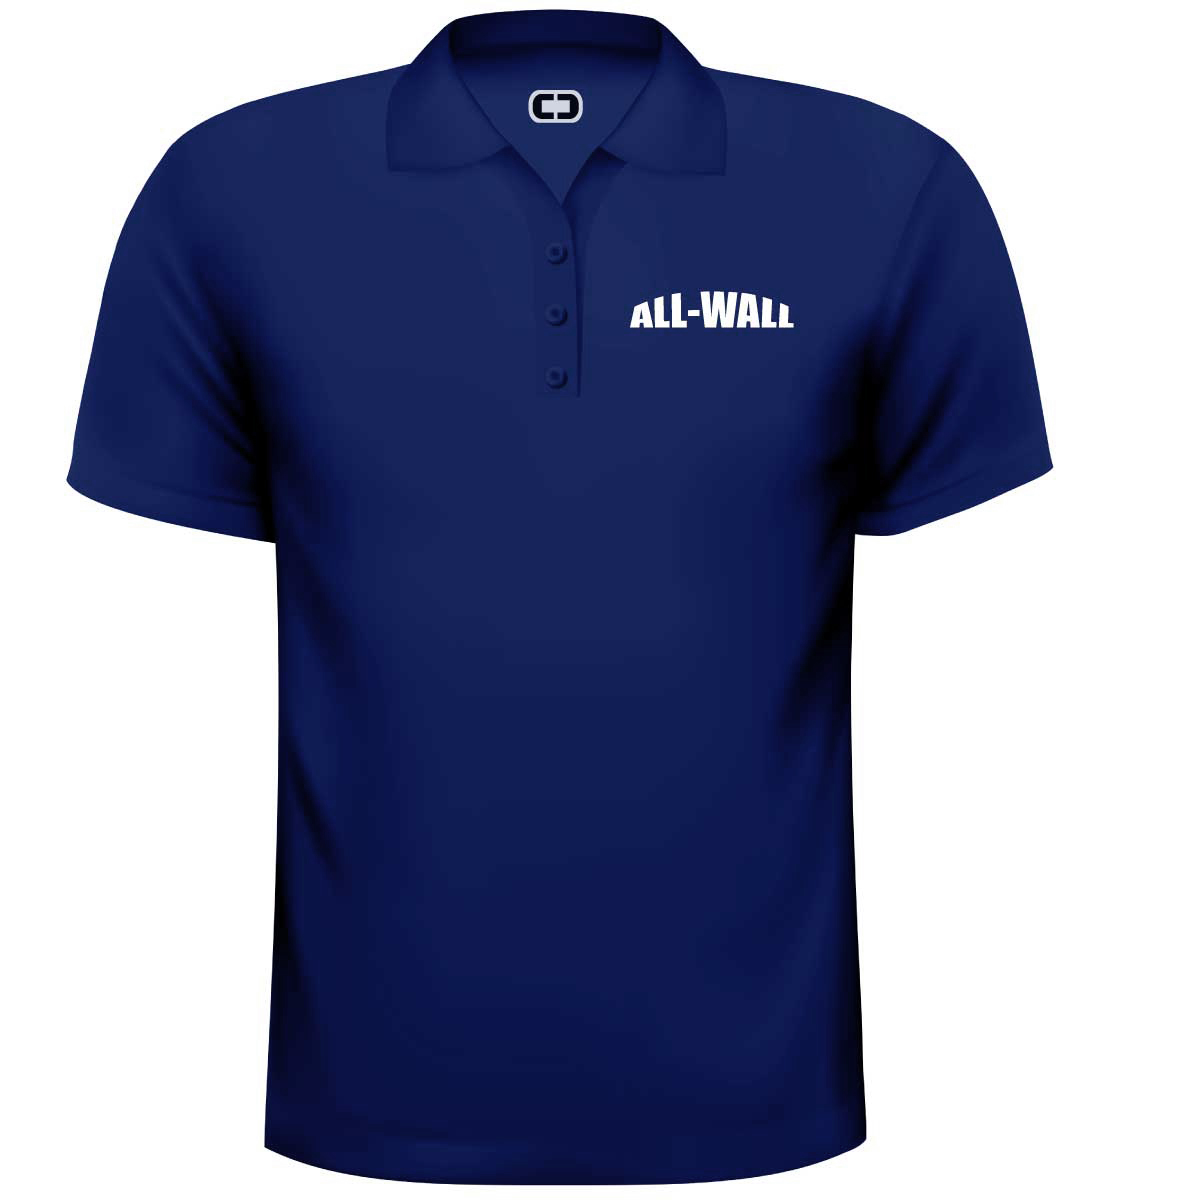 All-Wall Polo - Navy